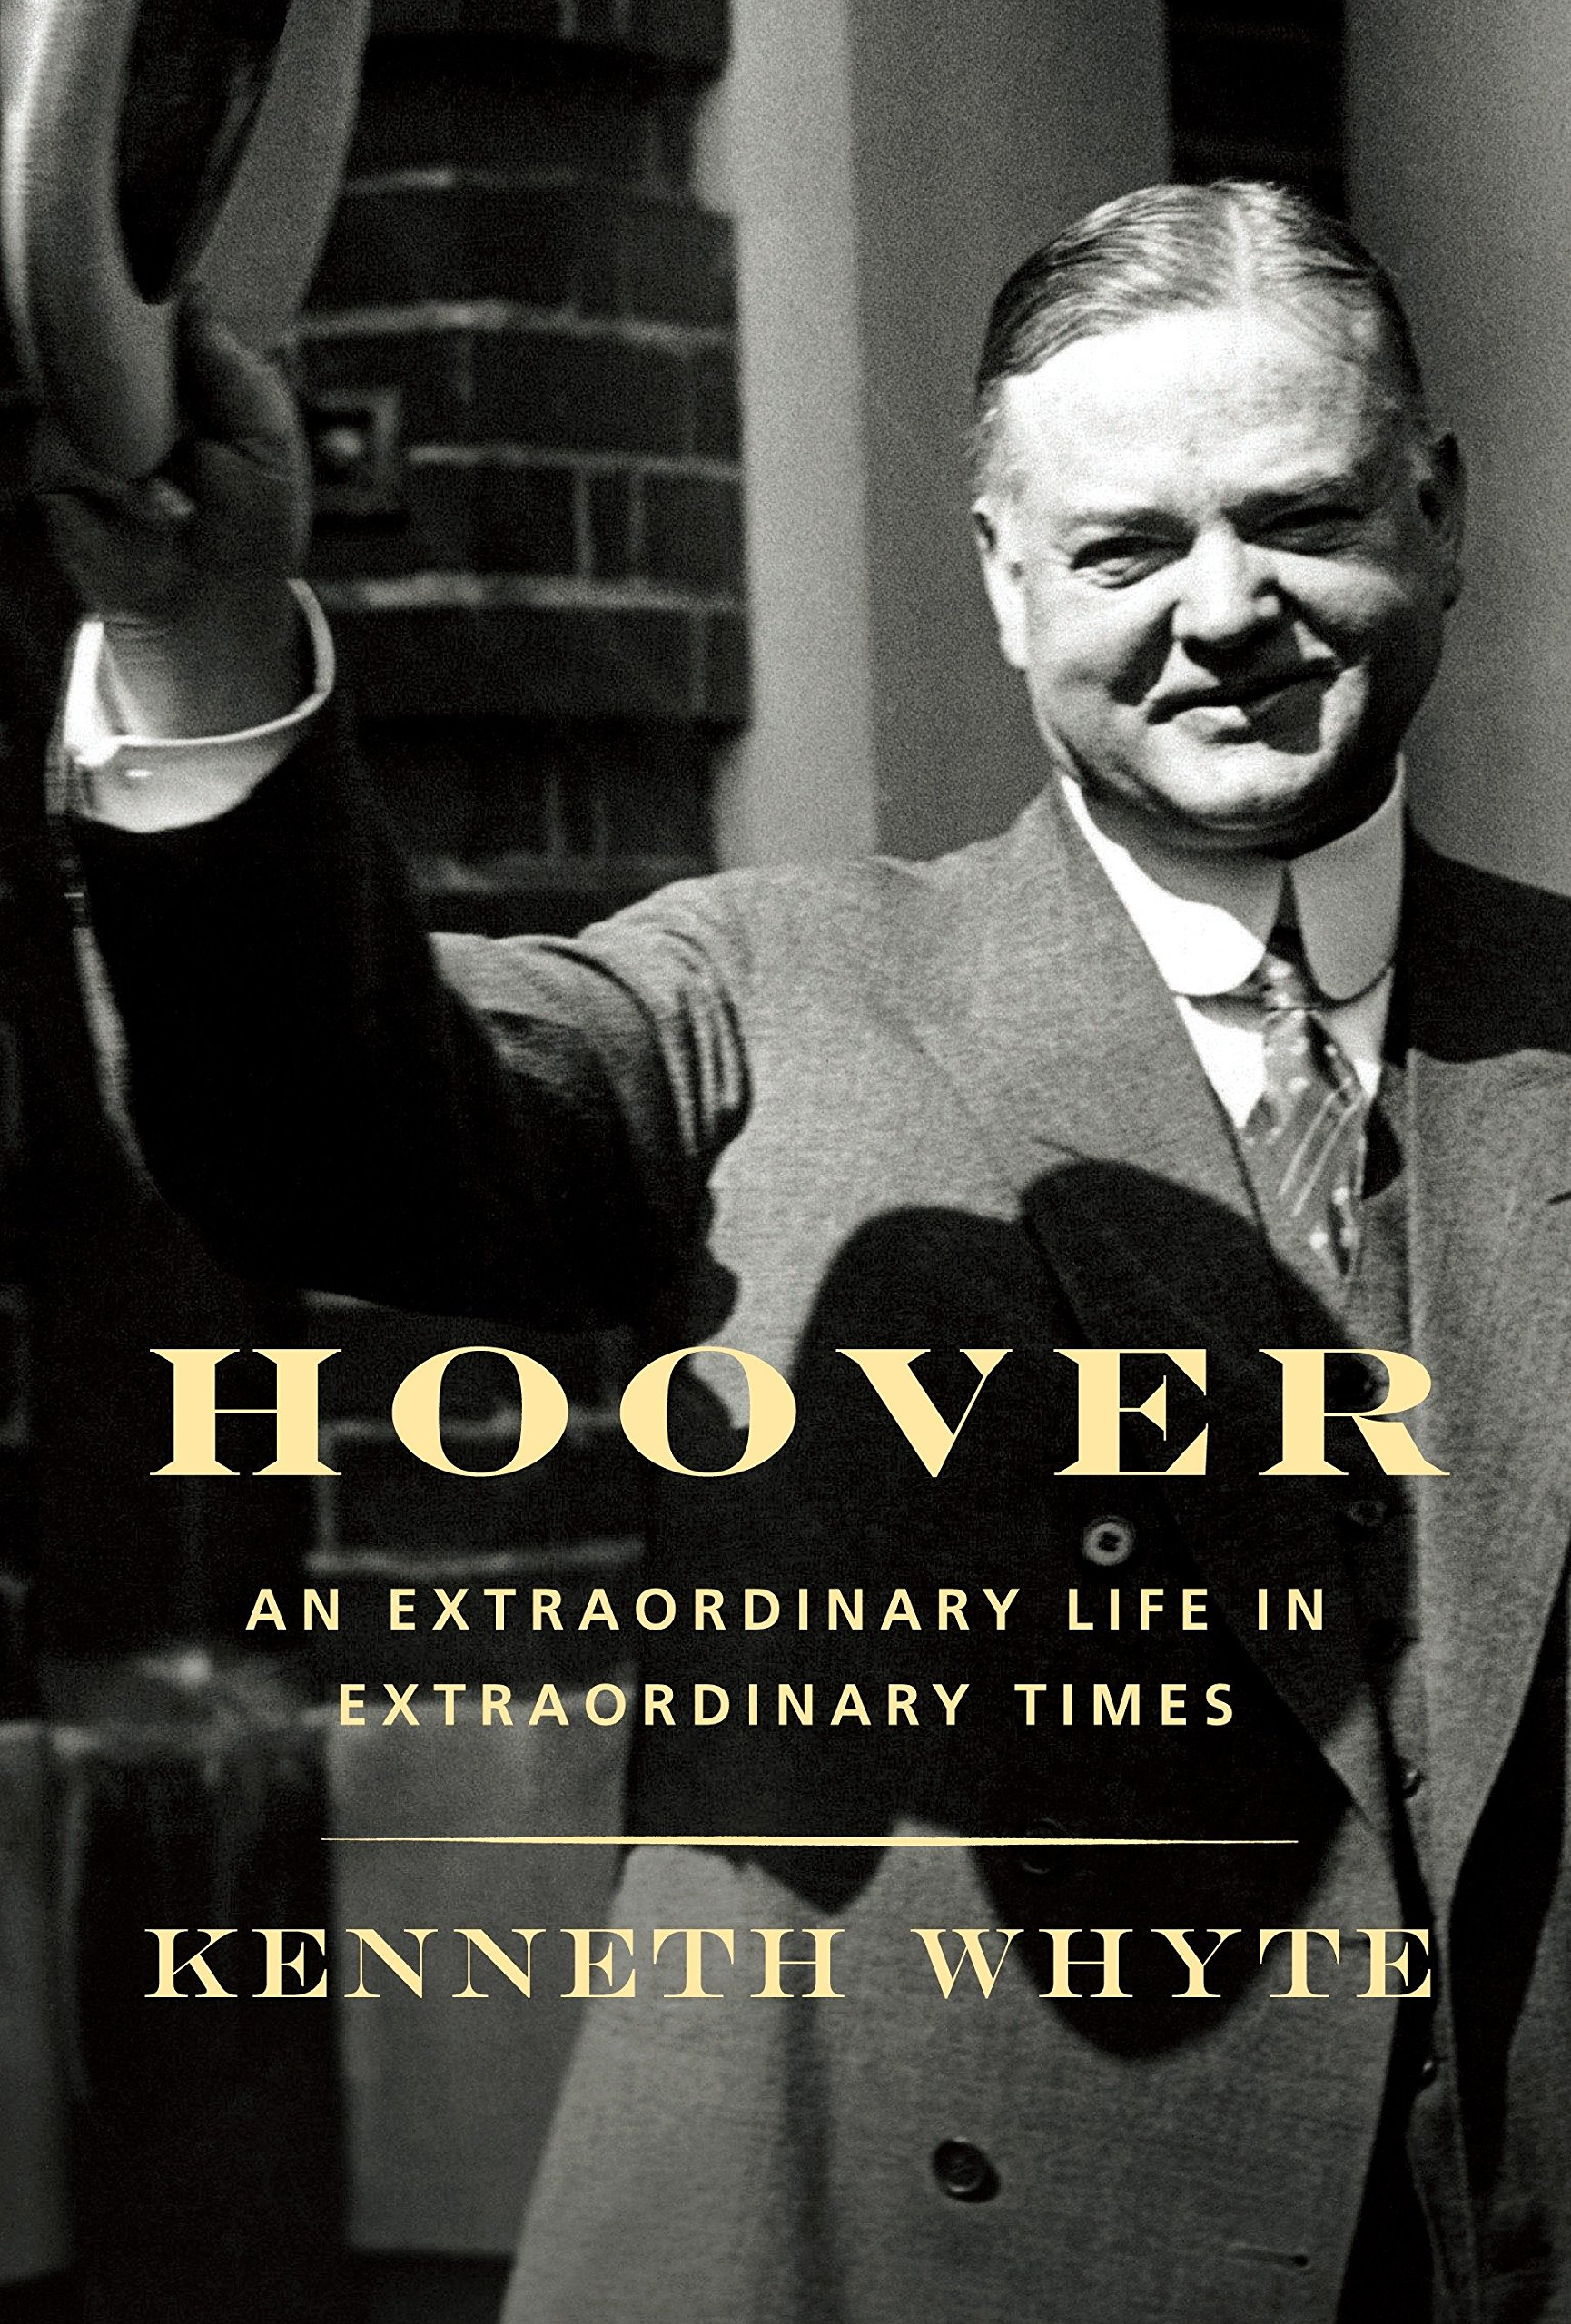 Hoover An Extraordinary Life In Extraordinary Times Kenneth Whyte 9780307597960